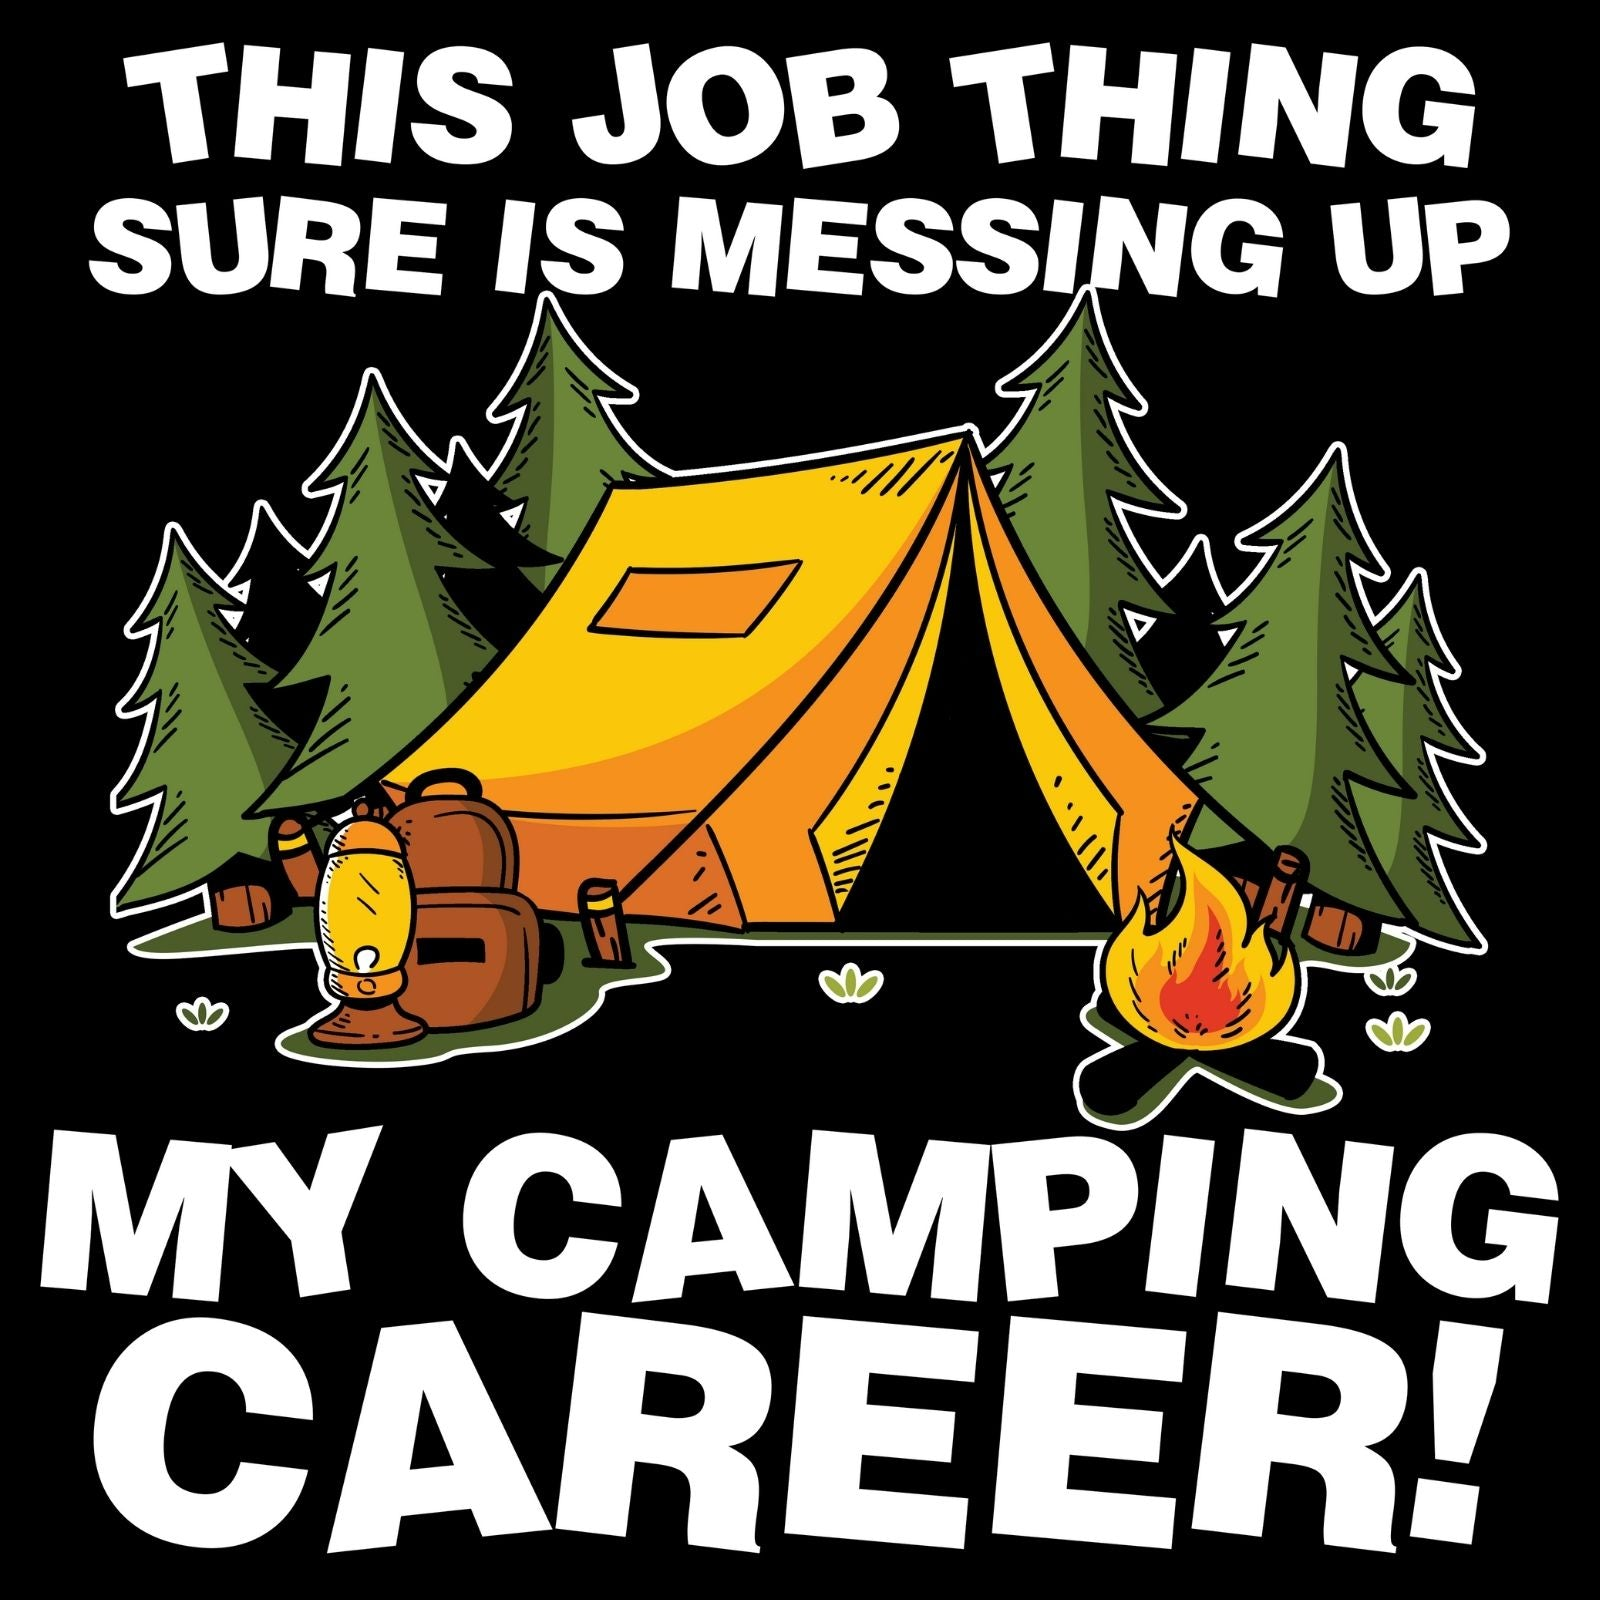 This Job Thing Sure Is Messing Up My Camping Career! - Bastard Graphics